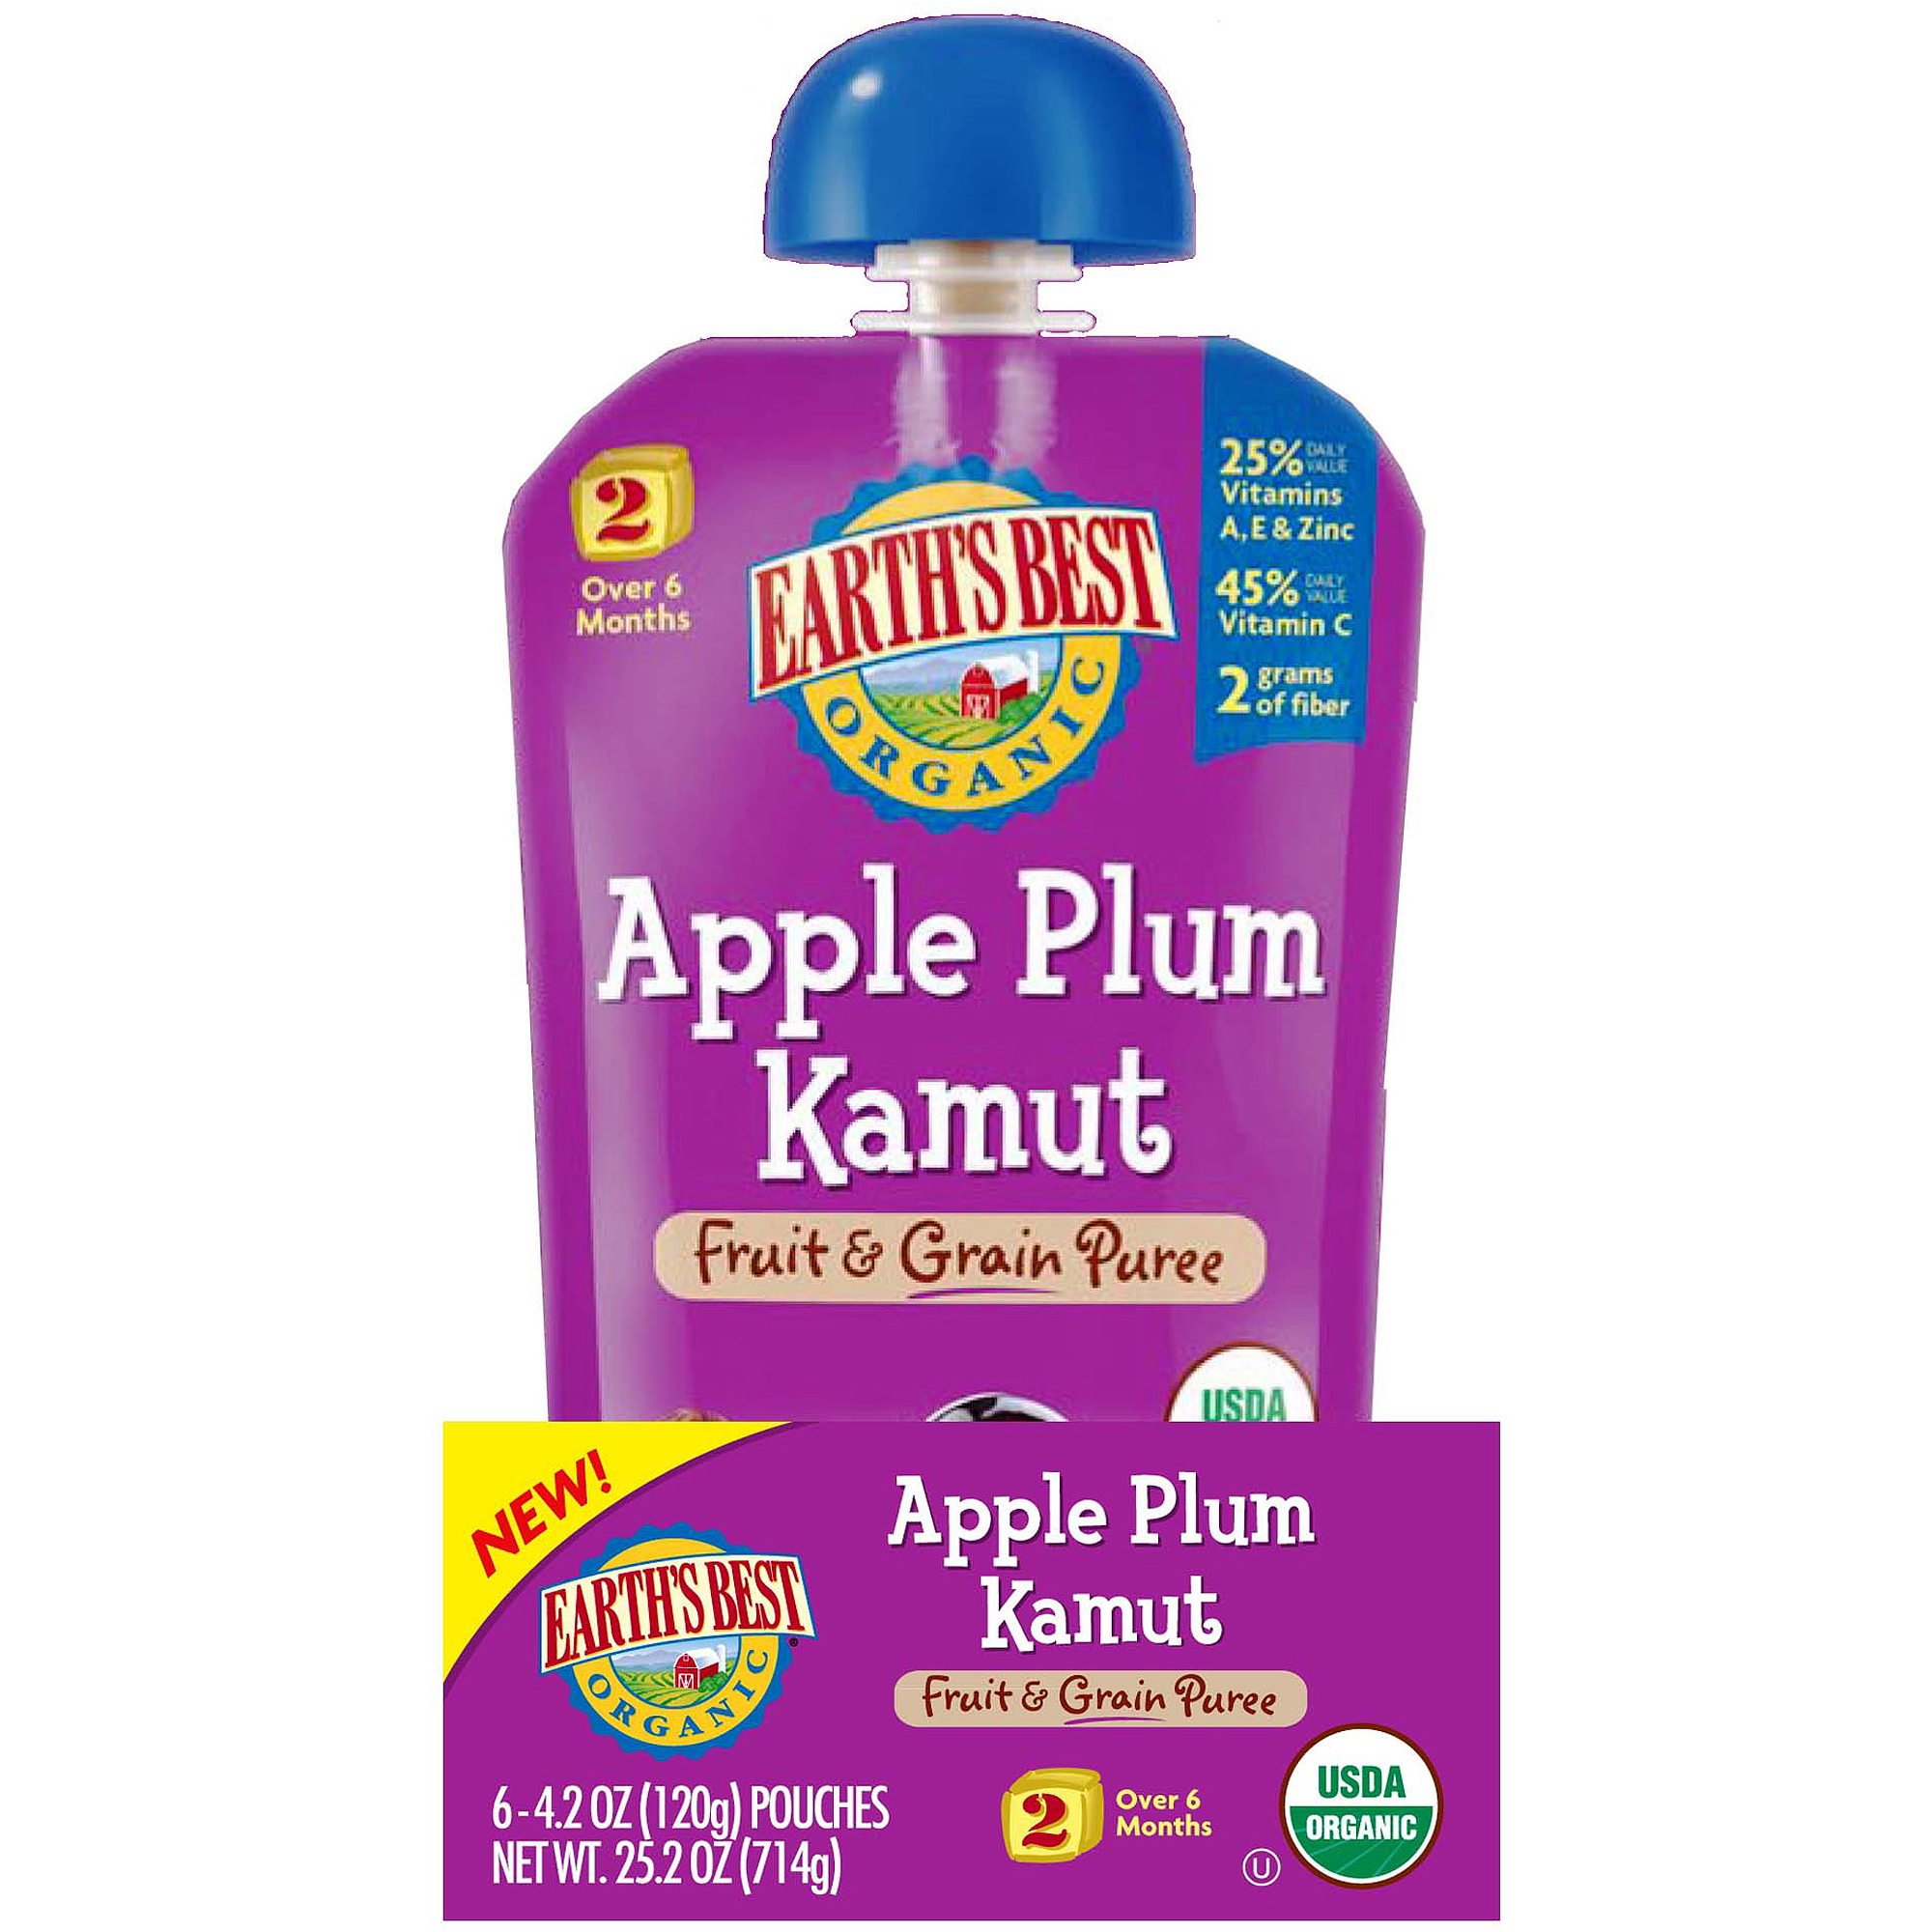 Earth's Best Organic Apple Plum Kamut Fruit & Grain Puree, 4.2 oz, (Pack of 6)